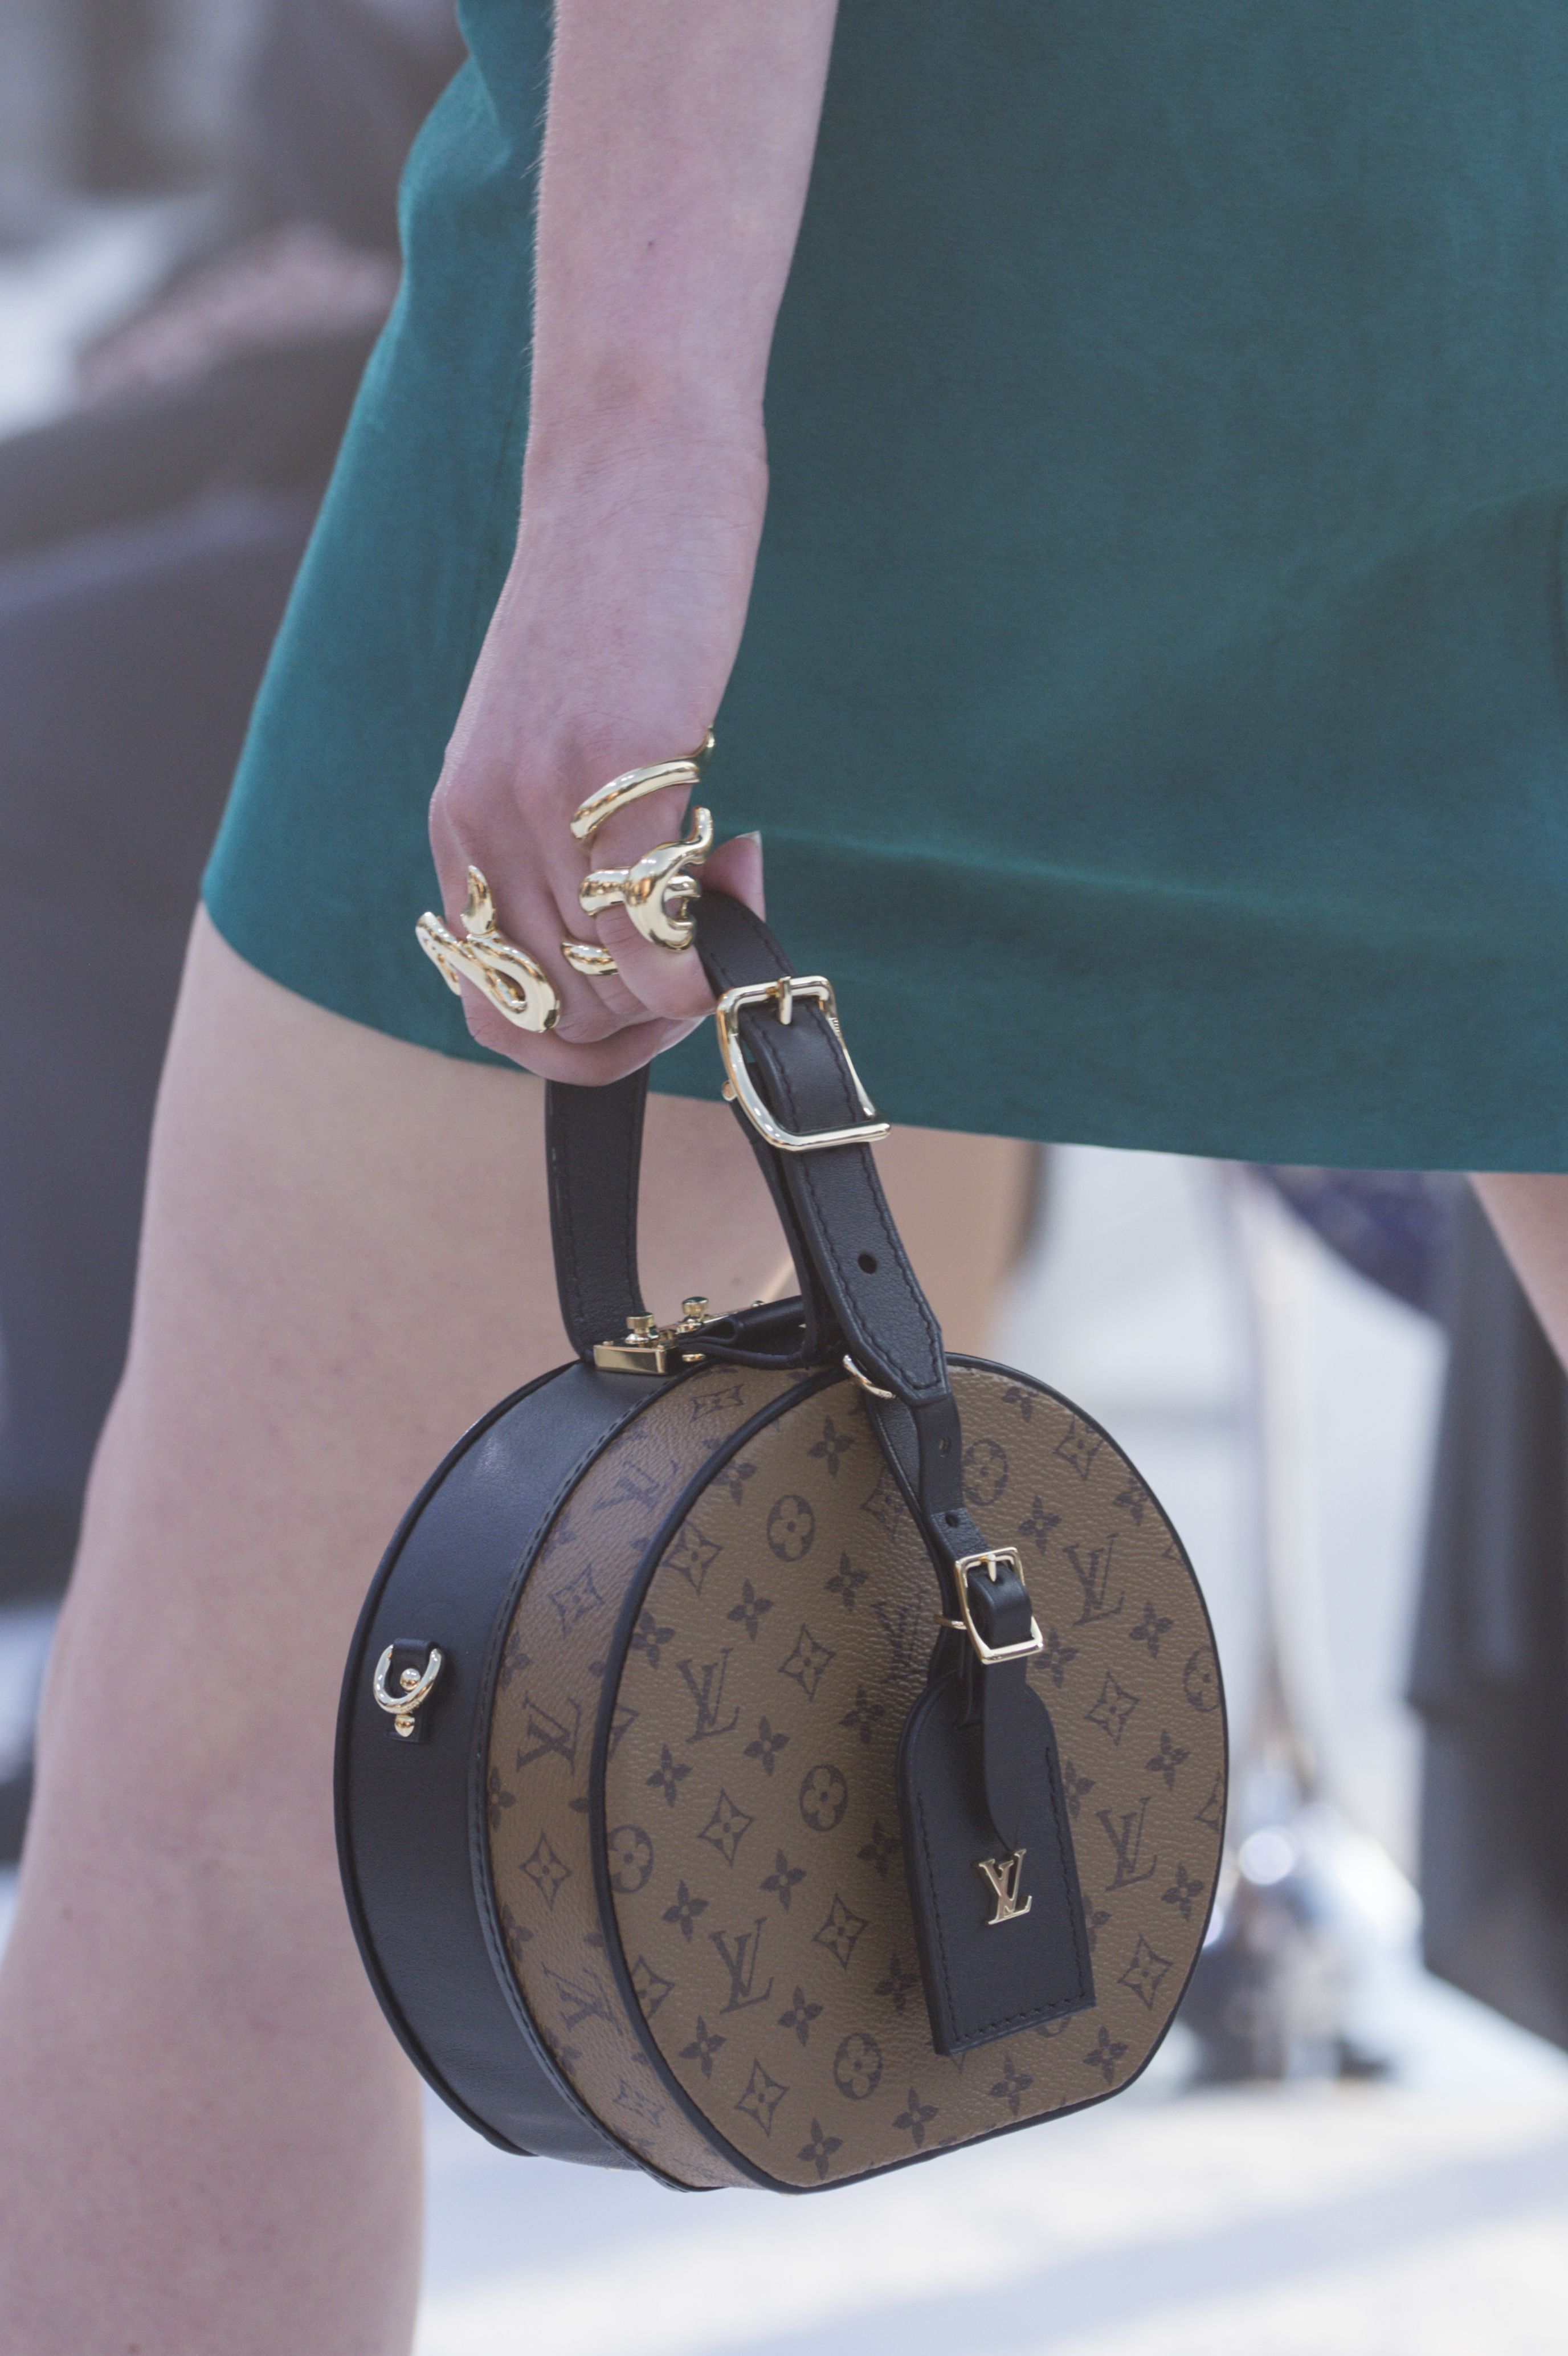 541be882ea0d A bag from the Louis Vuitton Cruise 2018 Fashion Show by Nicolas  Ghesquière